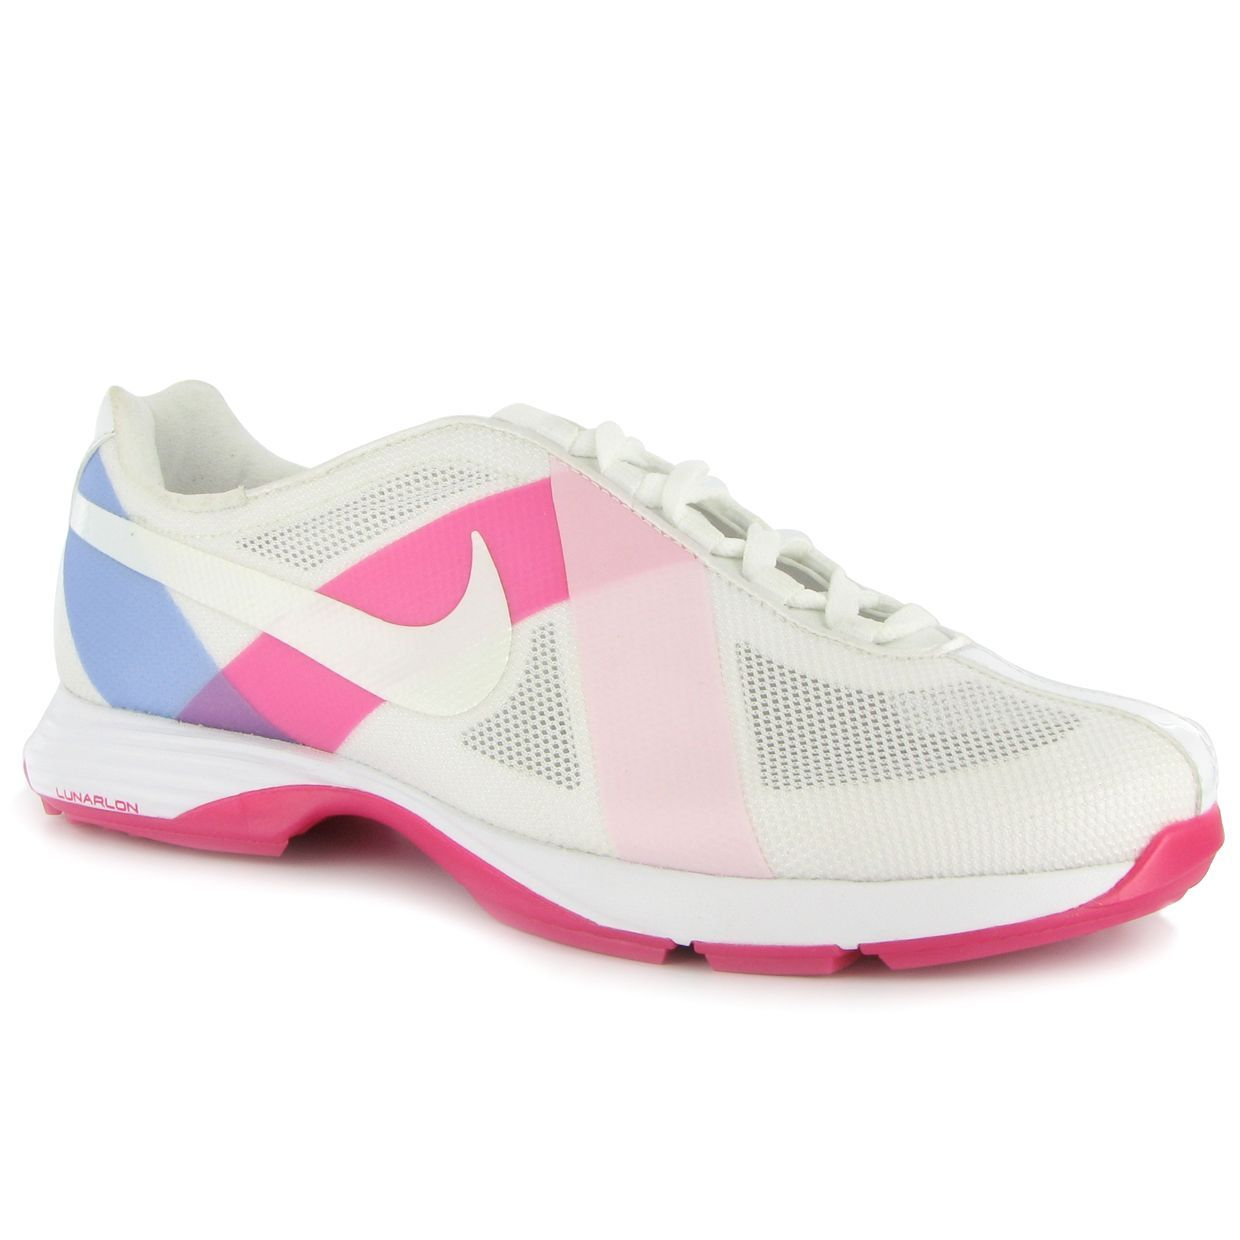 finest selection 084fe b8c77 Nike Lunar Summer Lite White Prism Pink 6 1 2 Wide Ladies Golf Shoes at .